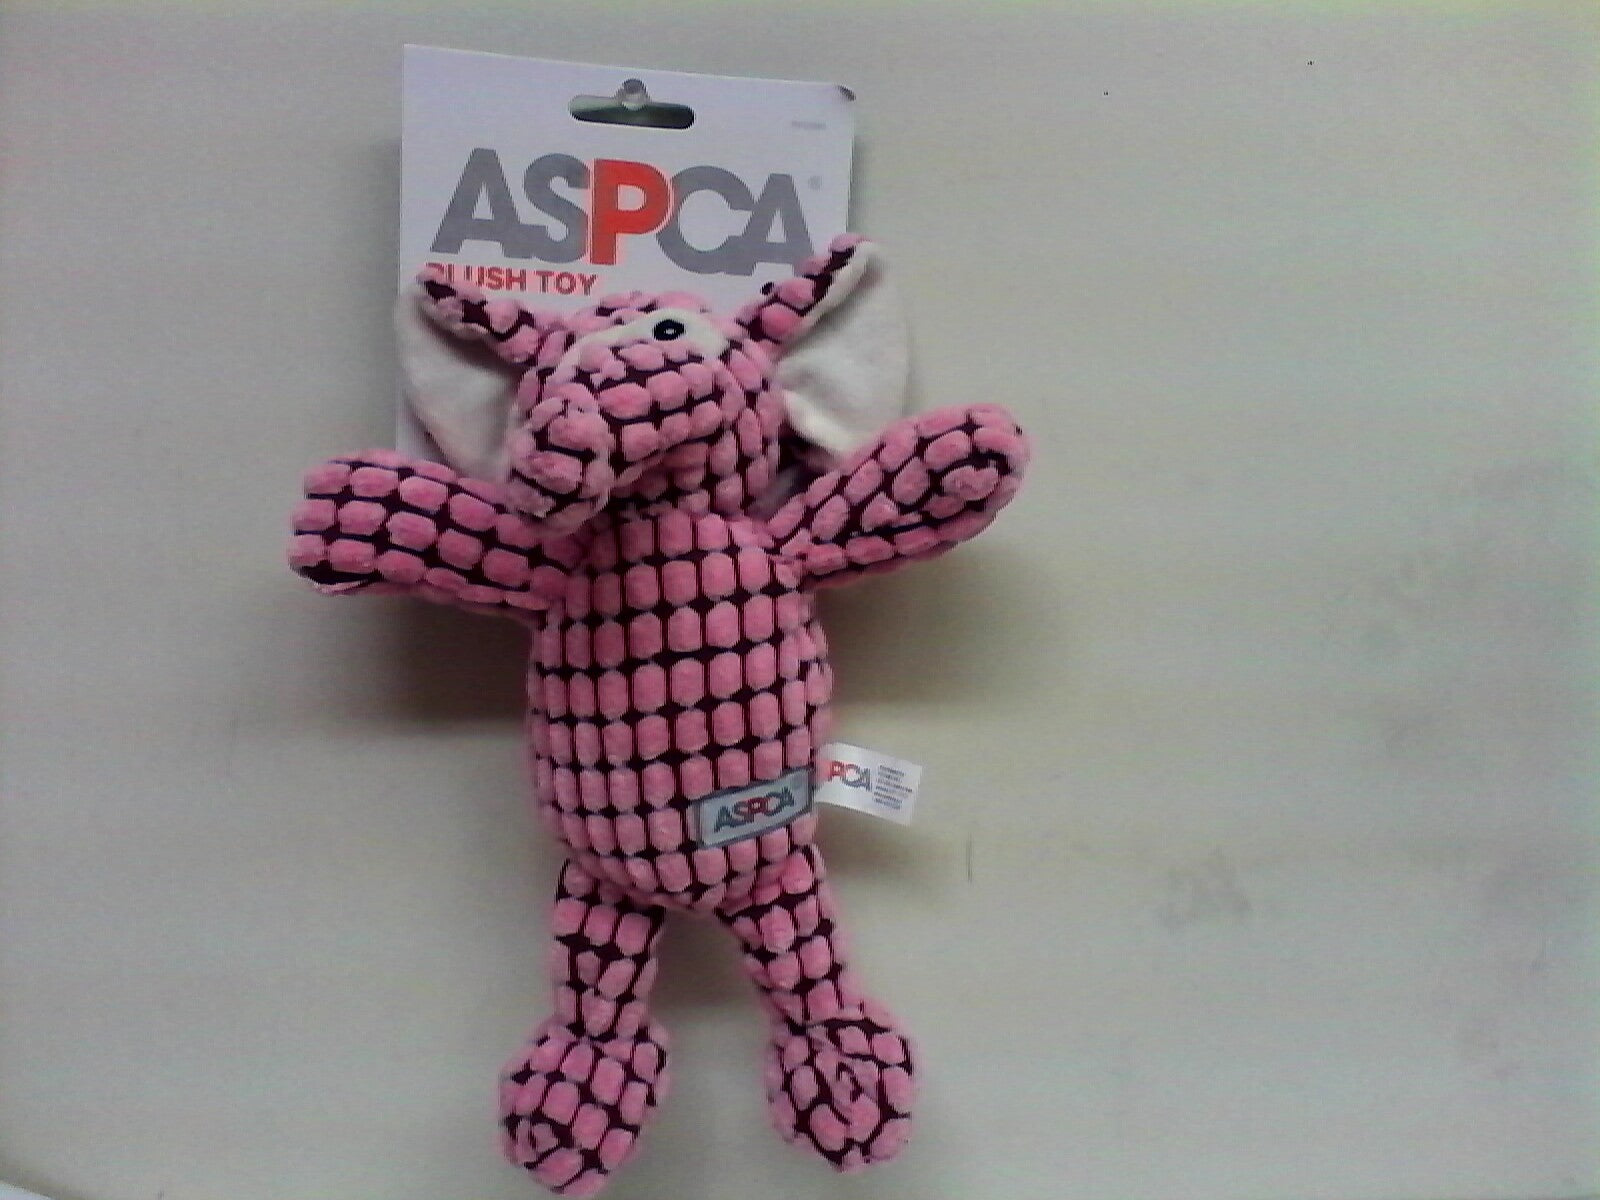 ASPCA Elephant Plush Toy